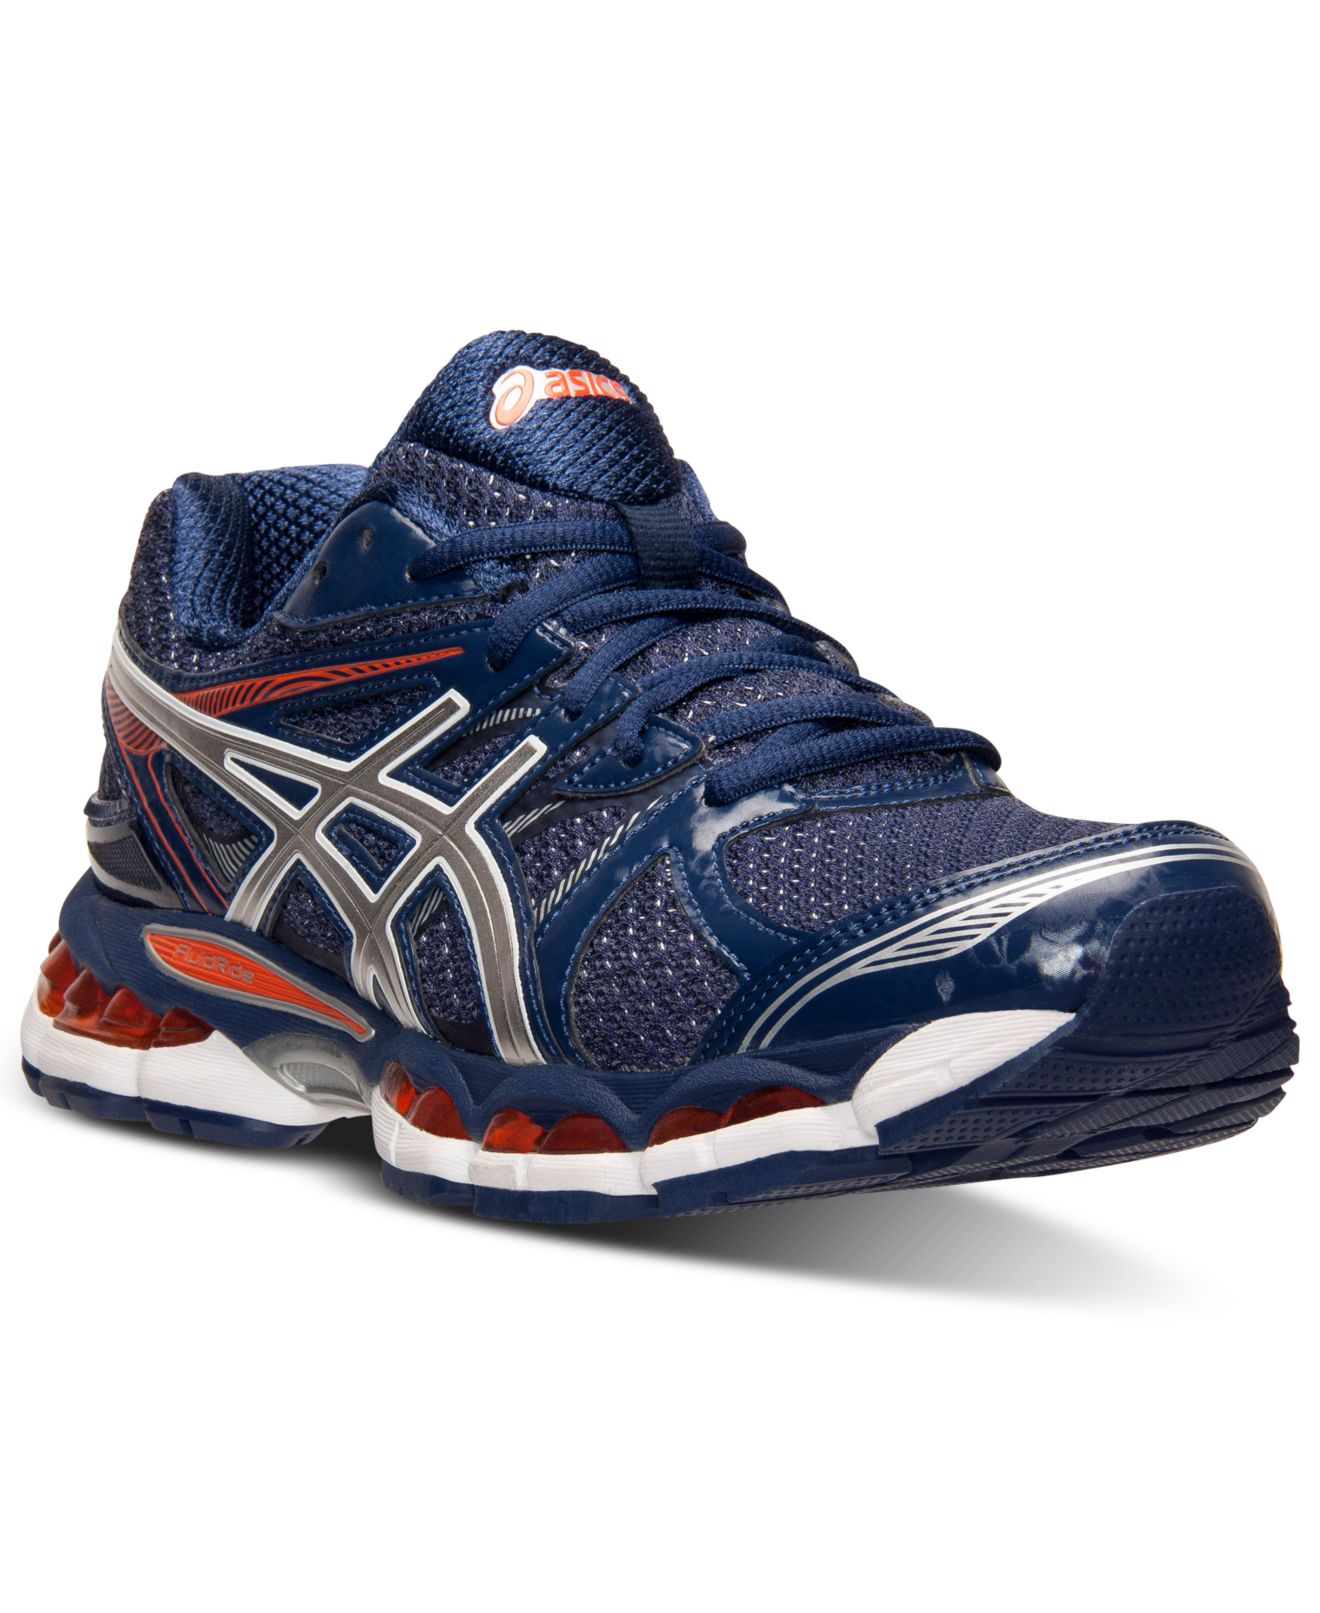 8dgcb6kf Outlet Asics Clearance Menu0026#39;s Running Shoes